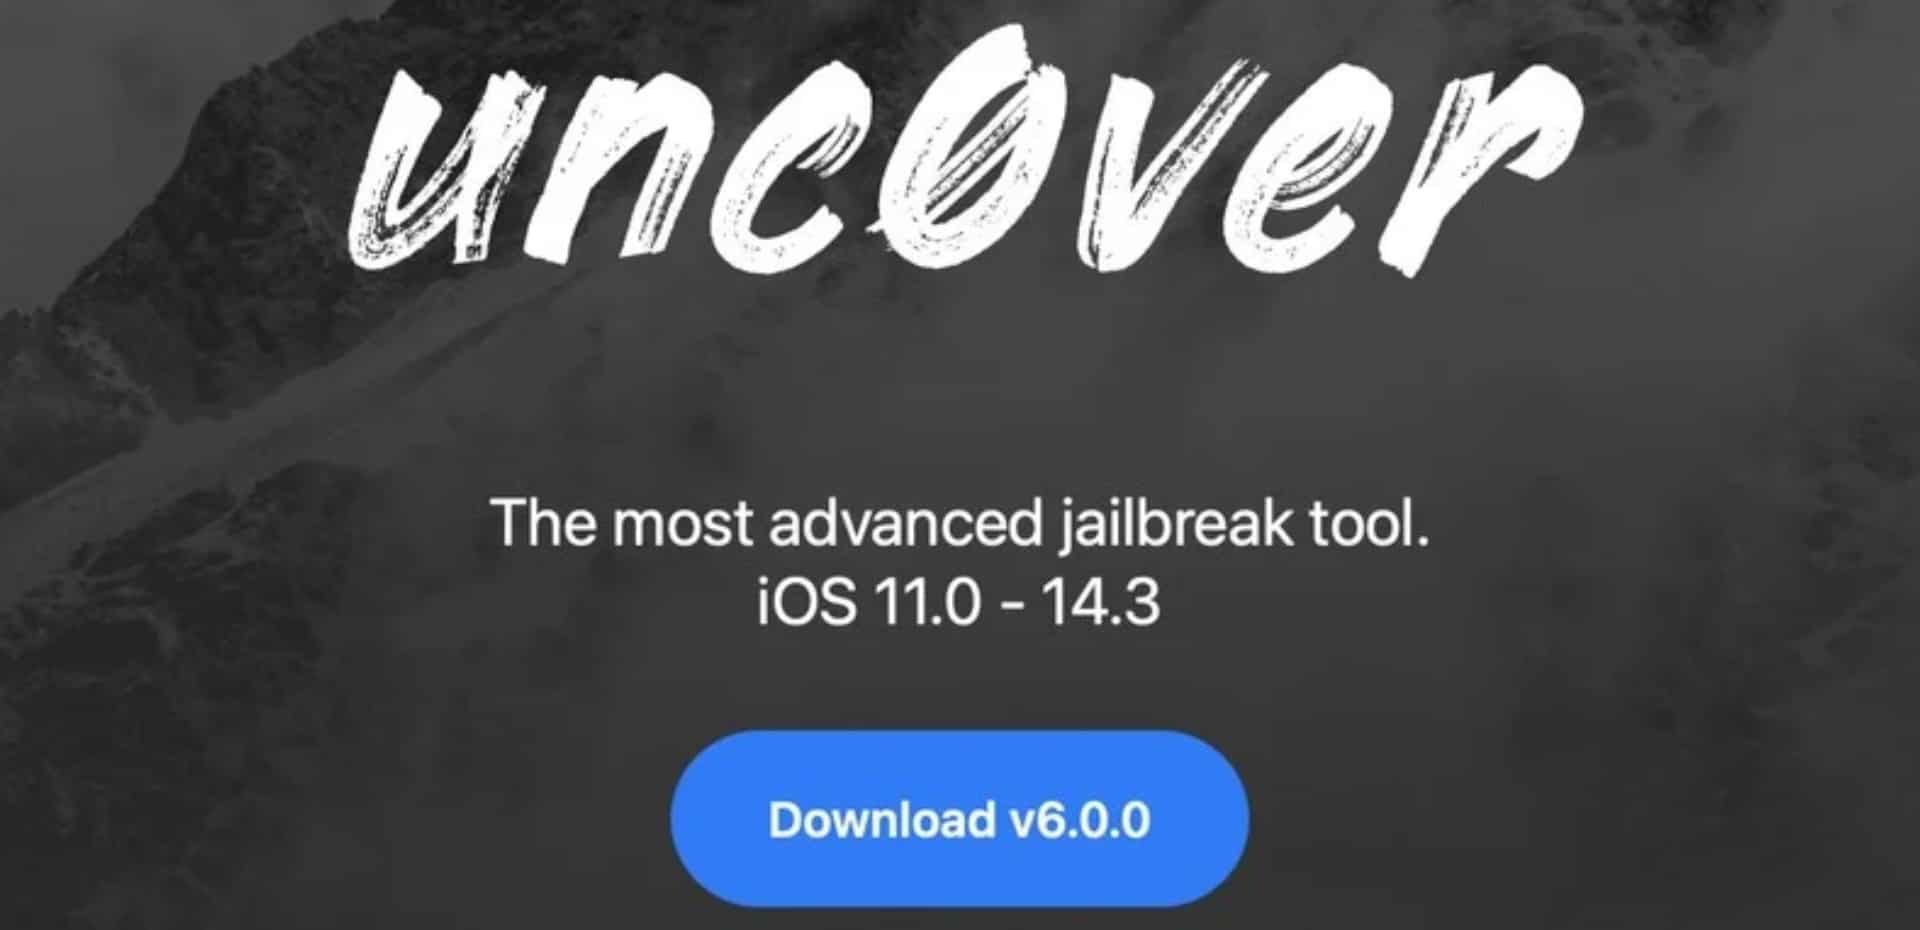 Unc0ver 6.0.0: Hackers Release New Jailbreak Tool With iOS 14.3 Compatibility